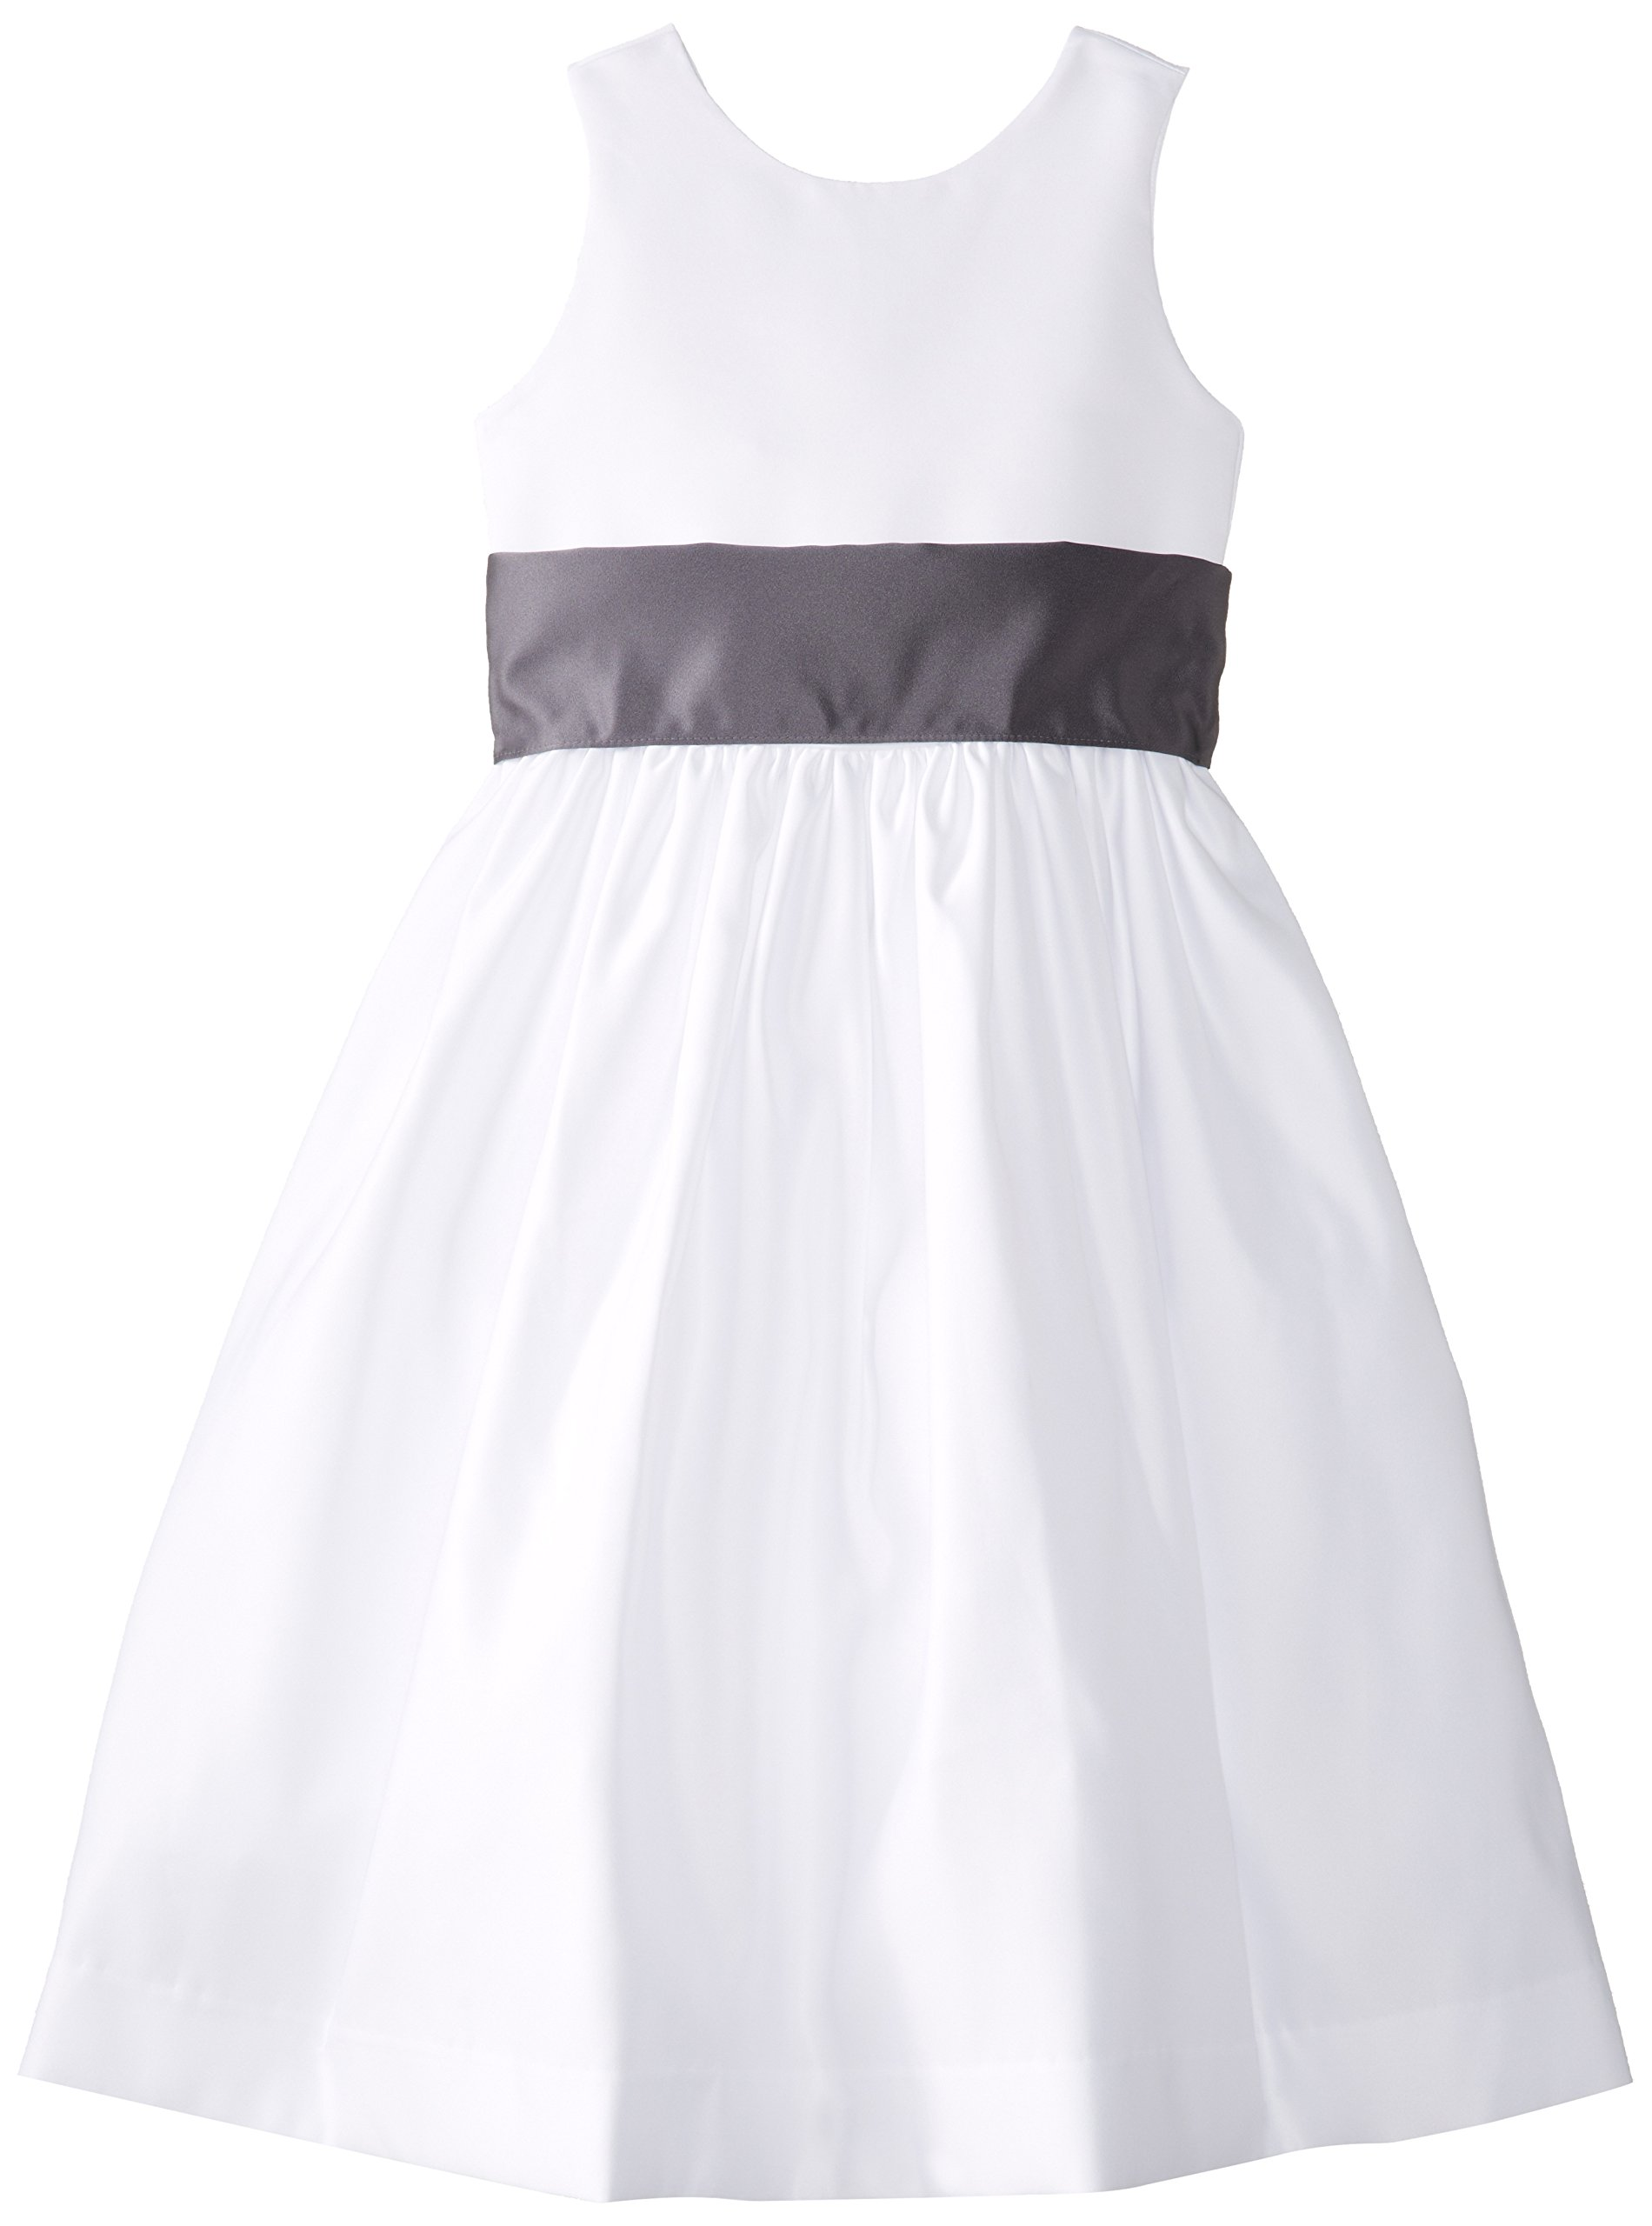 Us Angels Little Girls' Toddler White Dress with Sash, White/Pewter, 3T